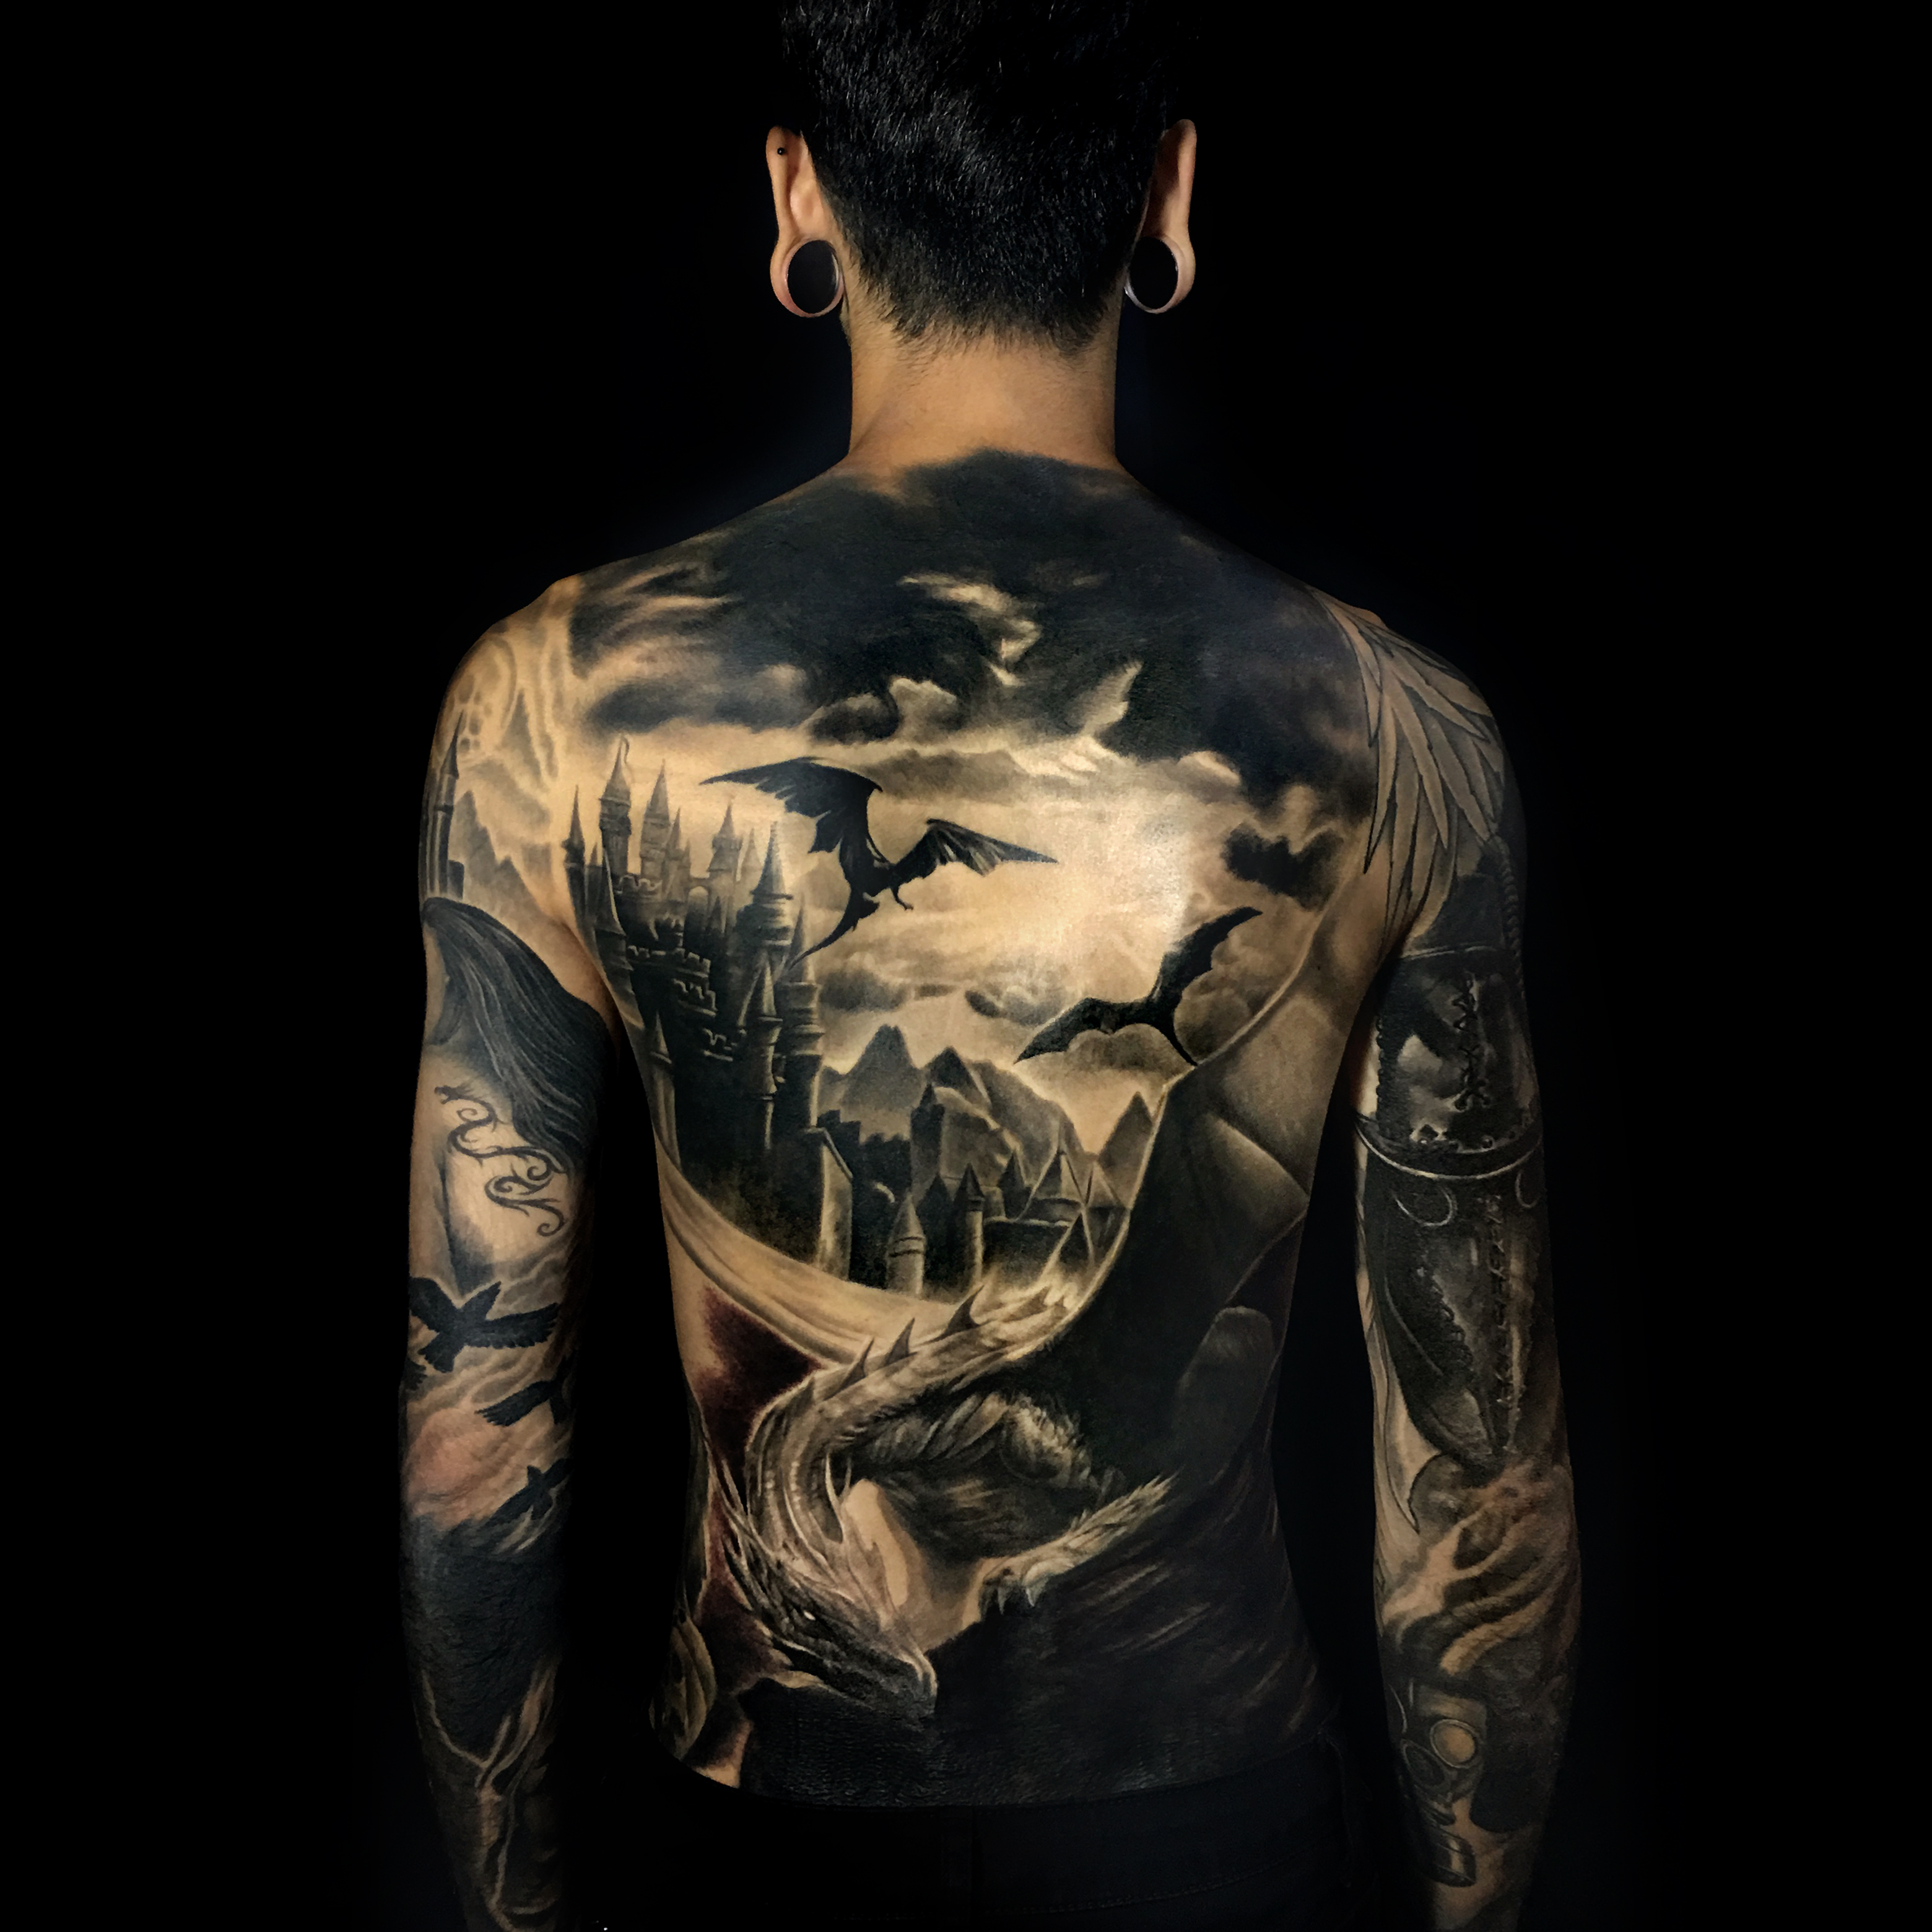 The Skin Trade: Six Tattoo Artists Share Their Stories